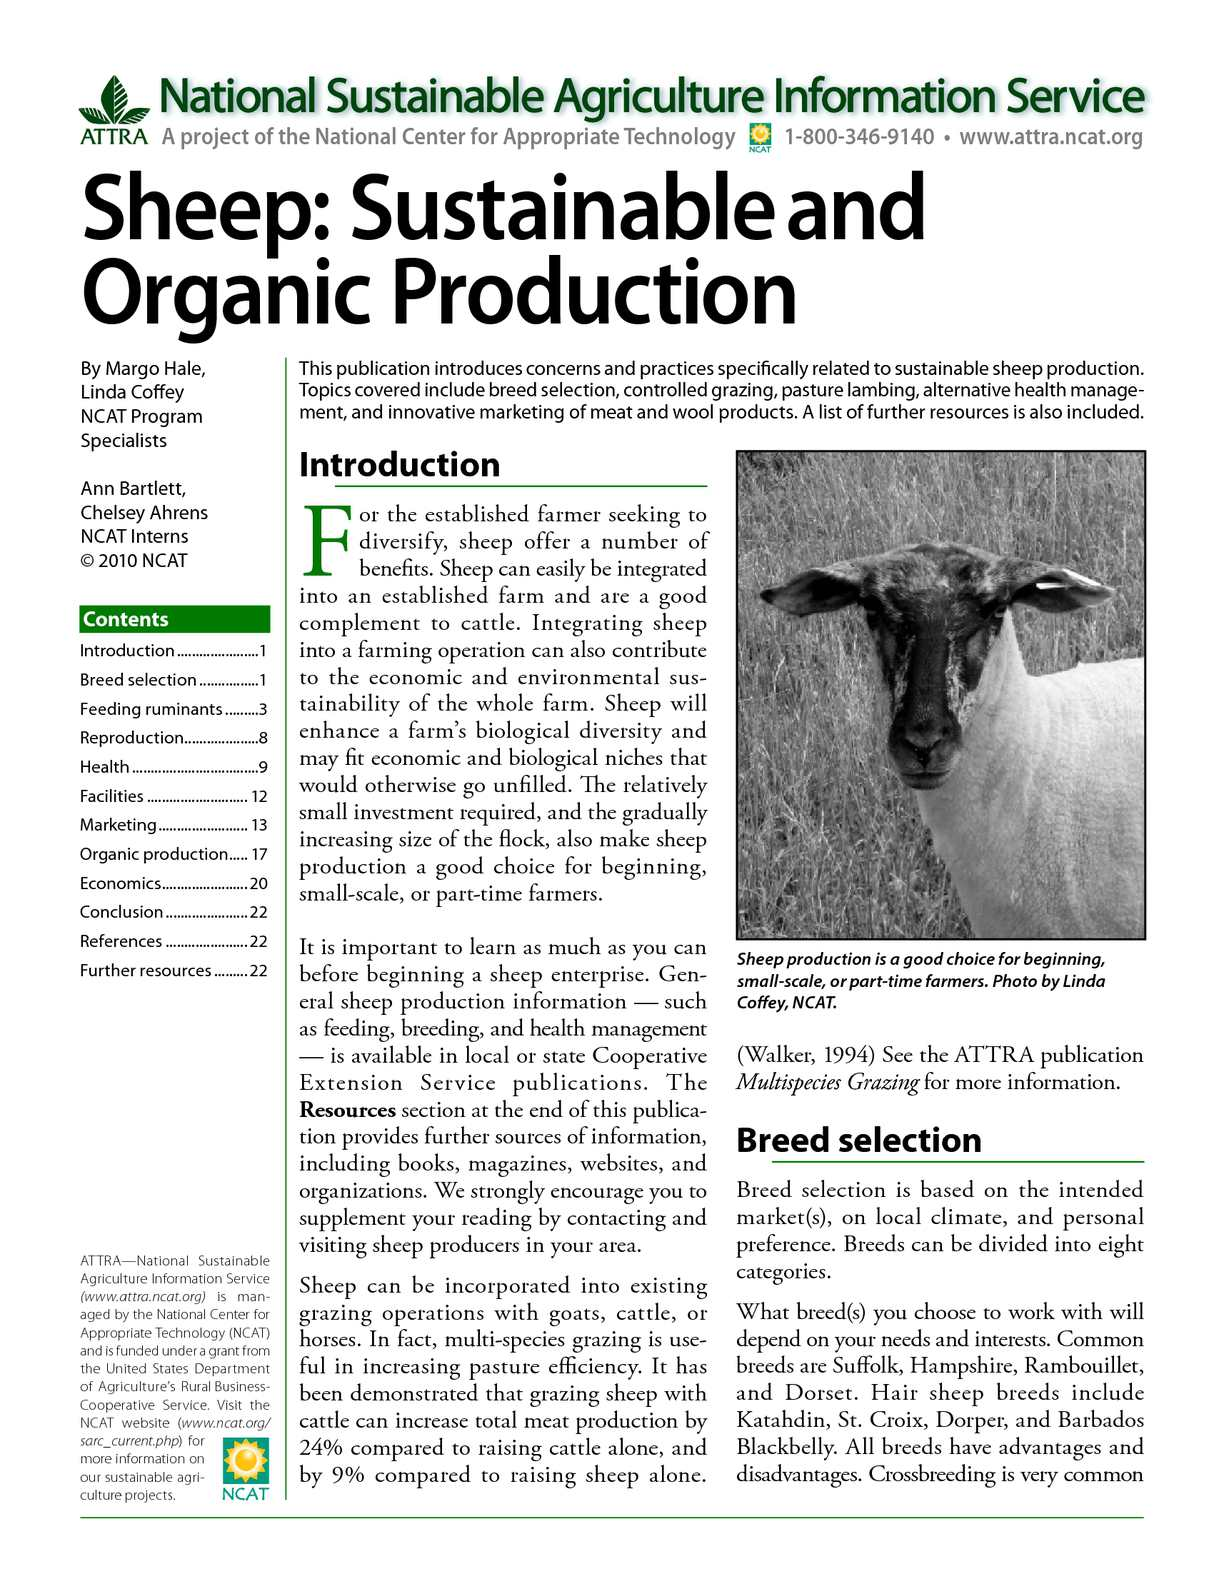 Calaméo - Sheep: Sustainable and Organic Production